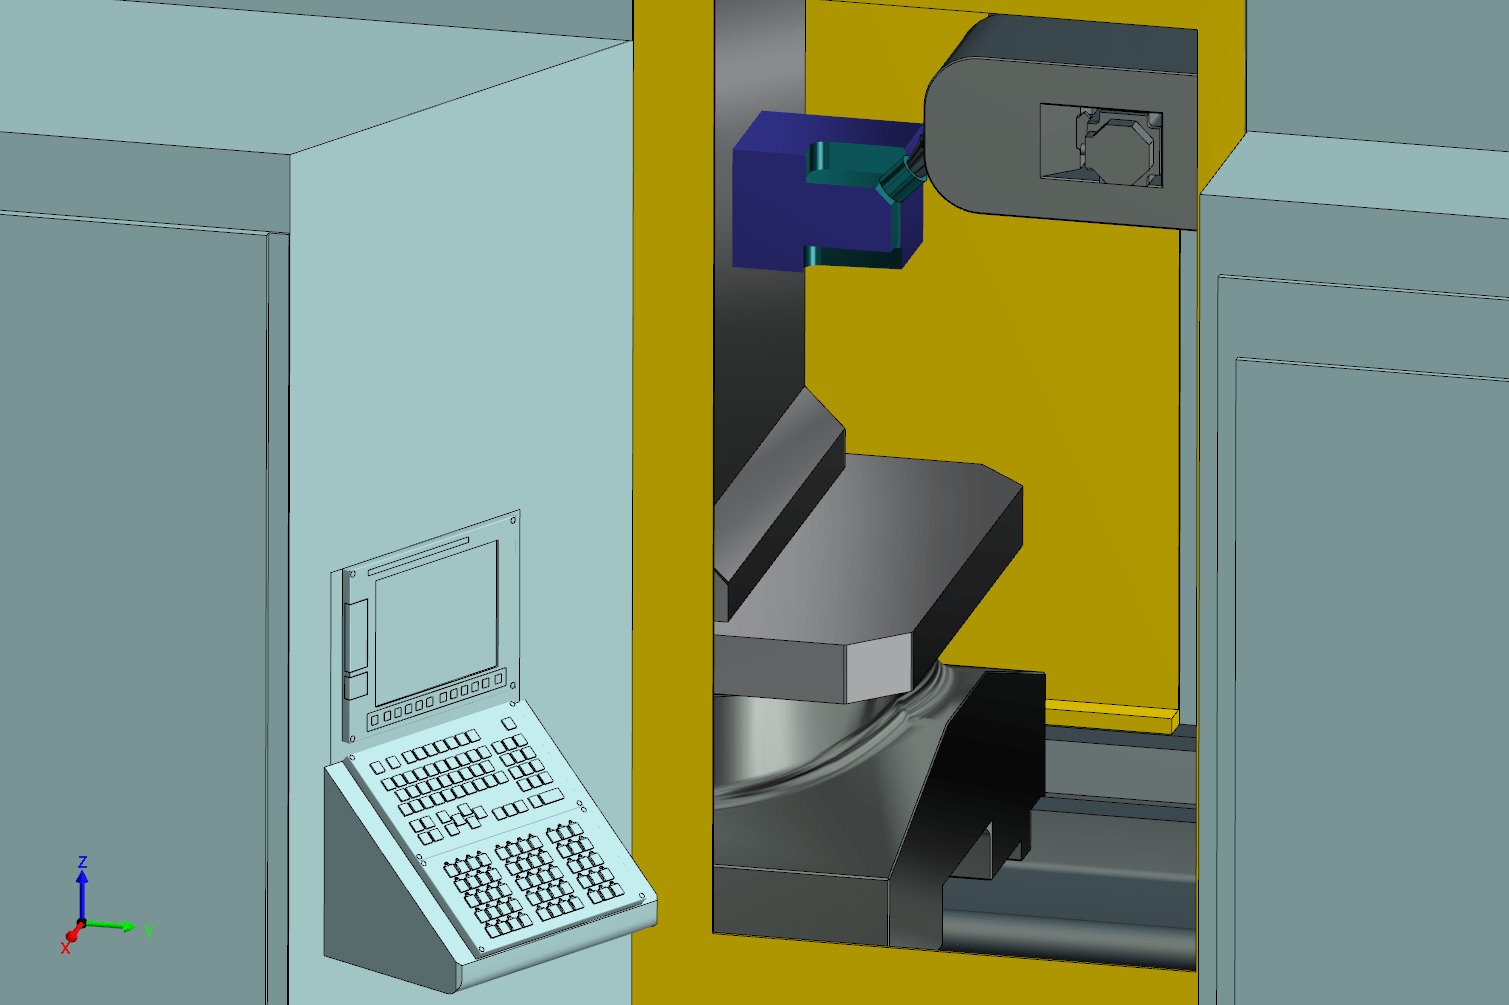 Fanuc Adds 5 Axis Milling Features To Its Machining